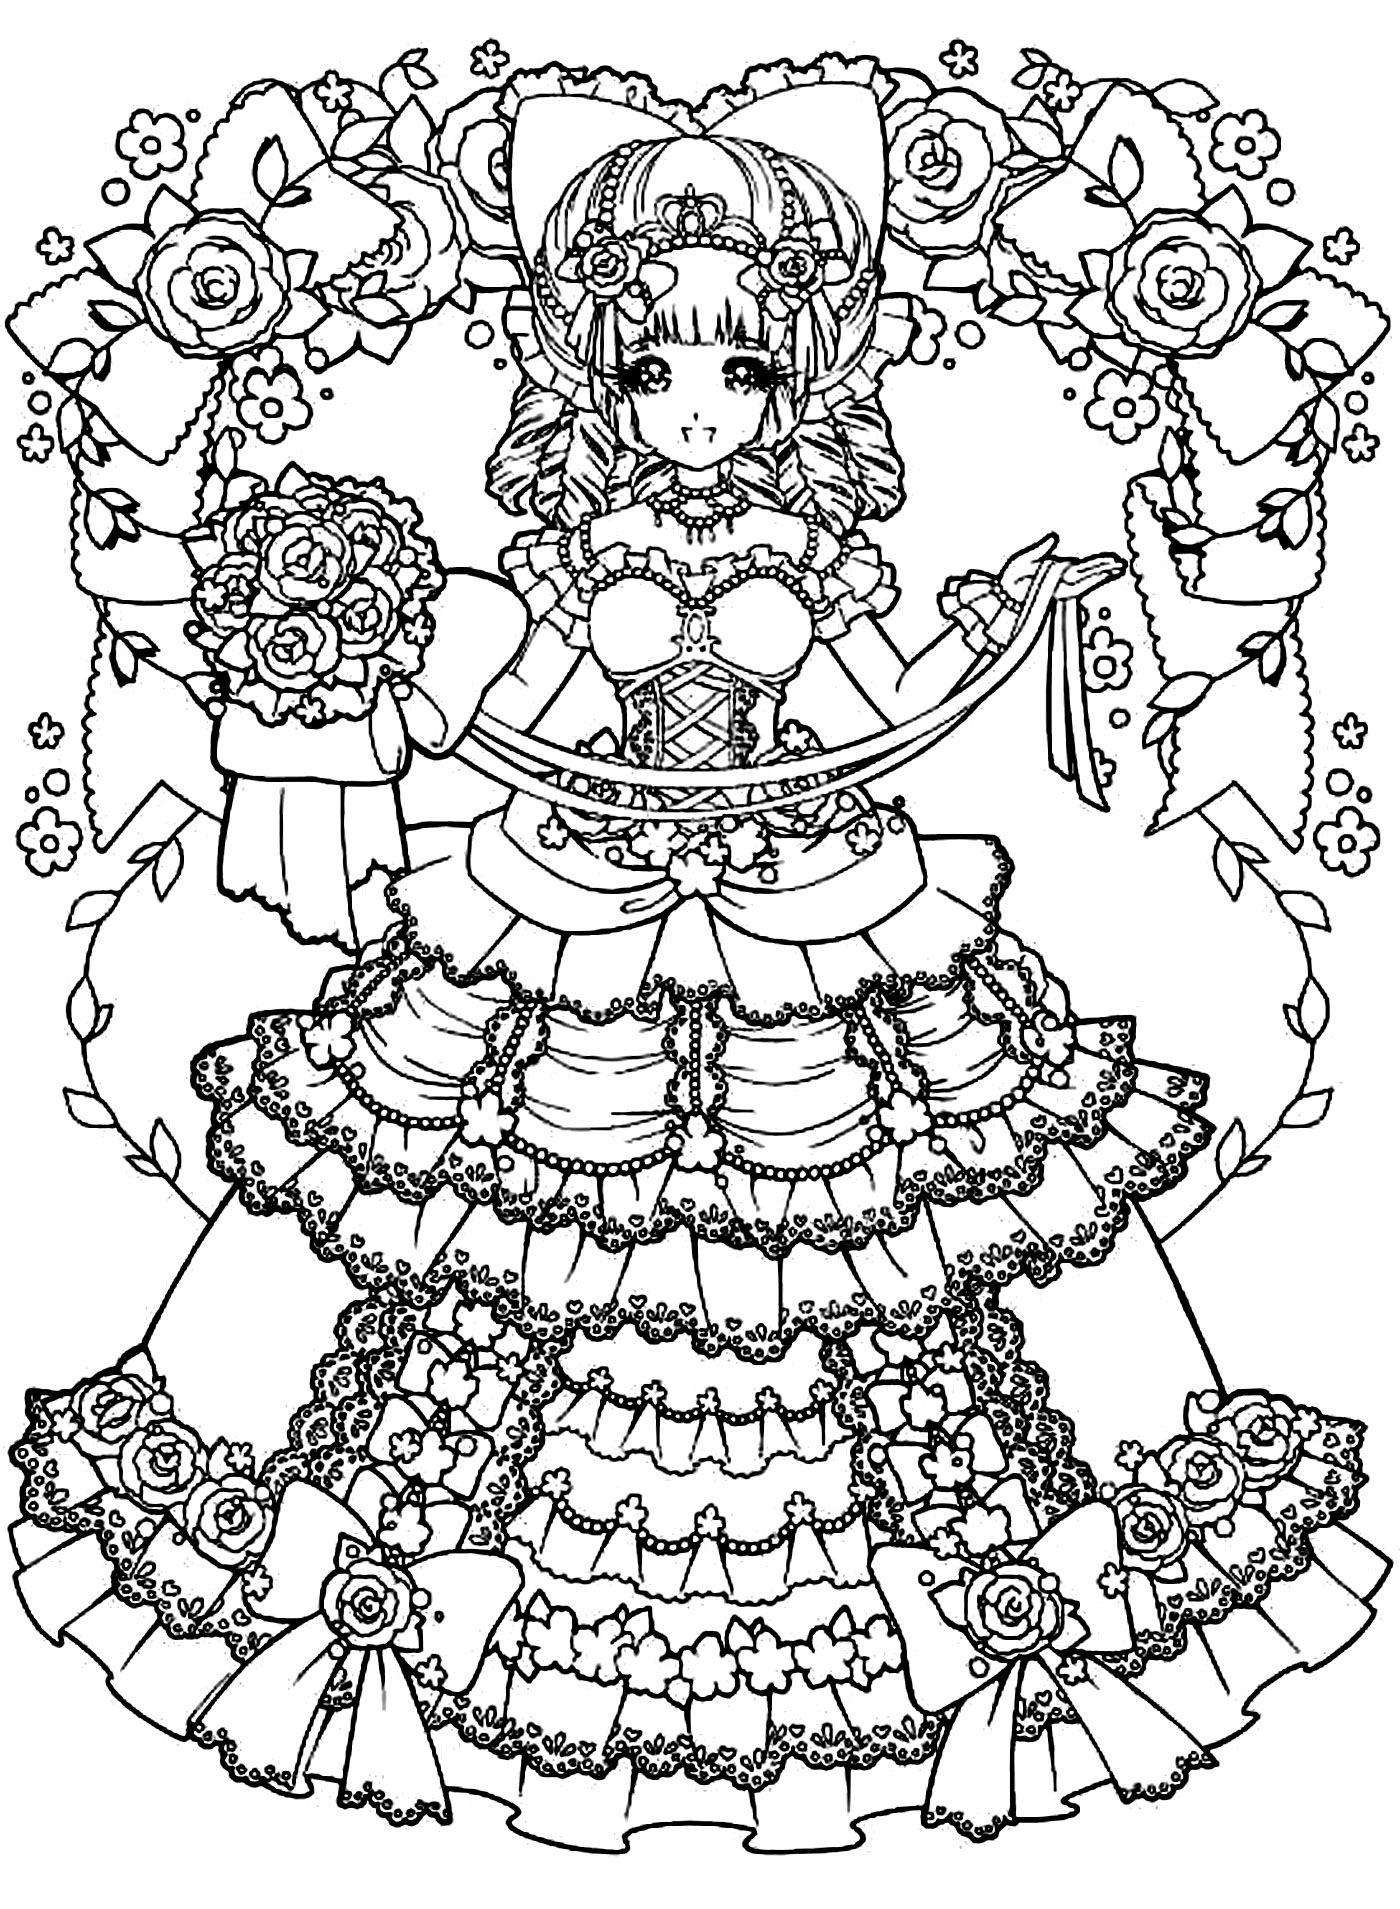 Coloring adult back to childhood manga girl dress